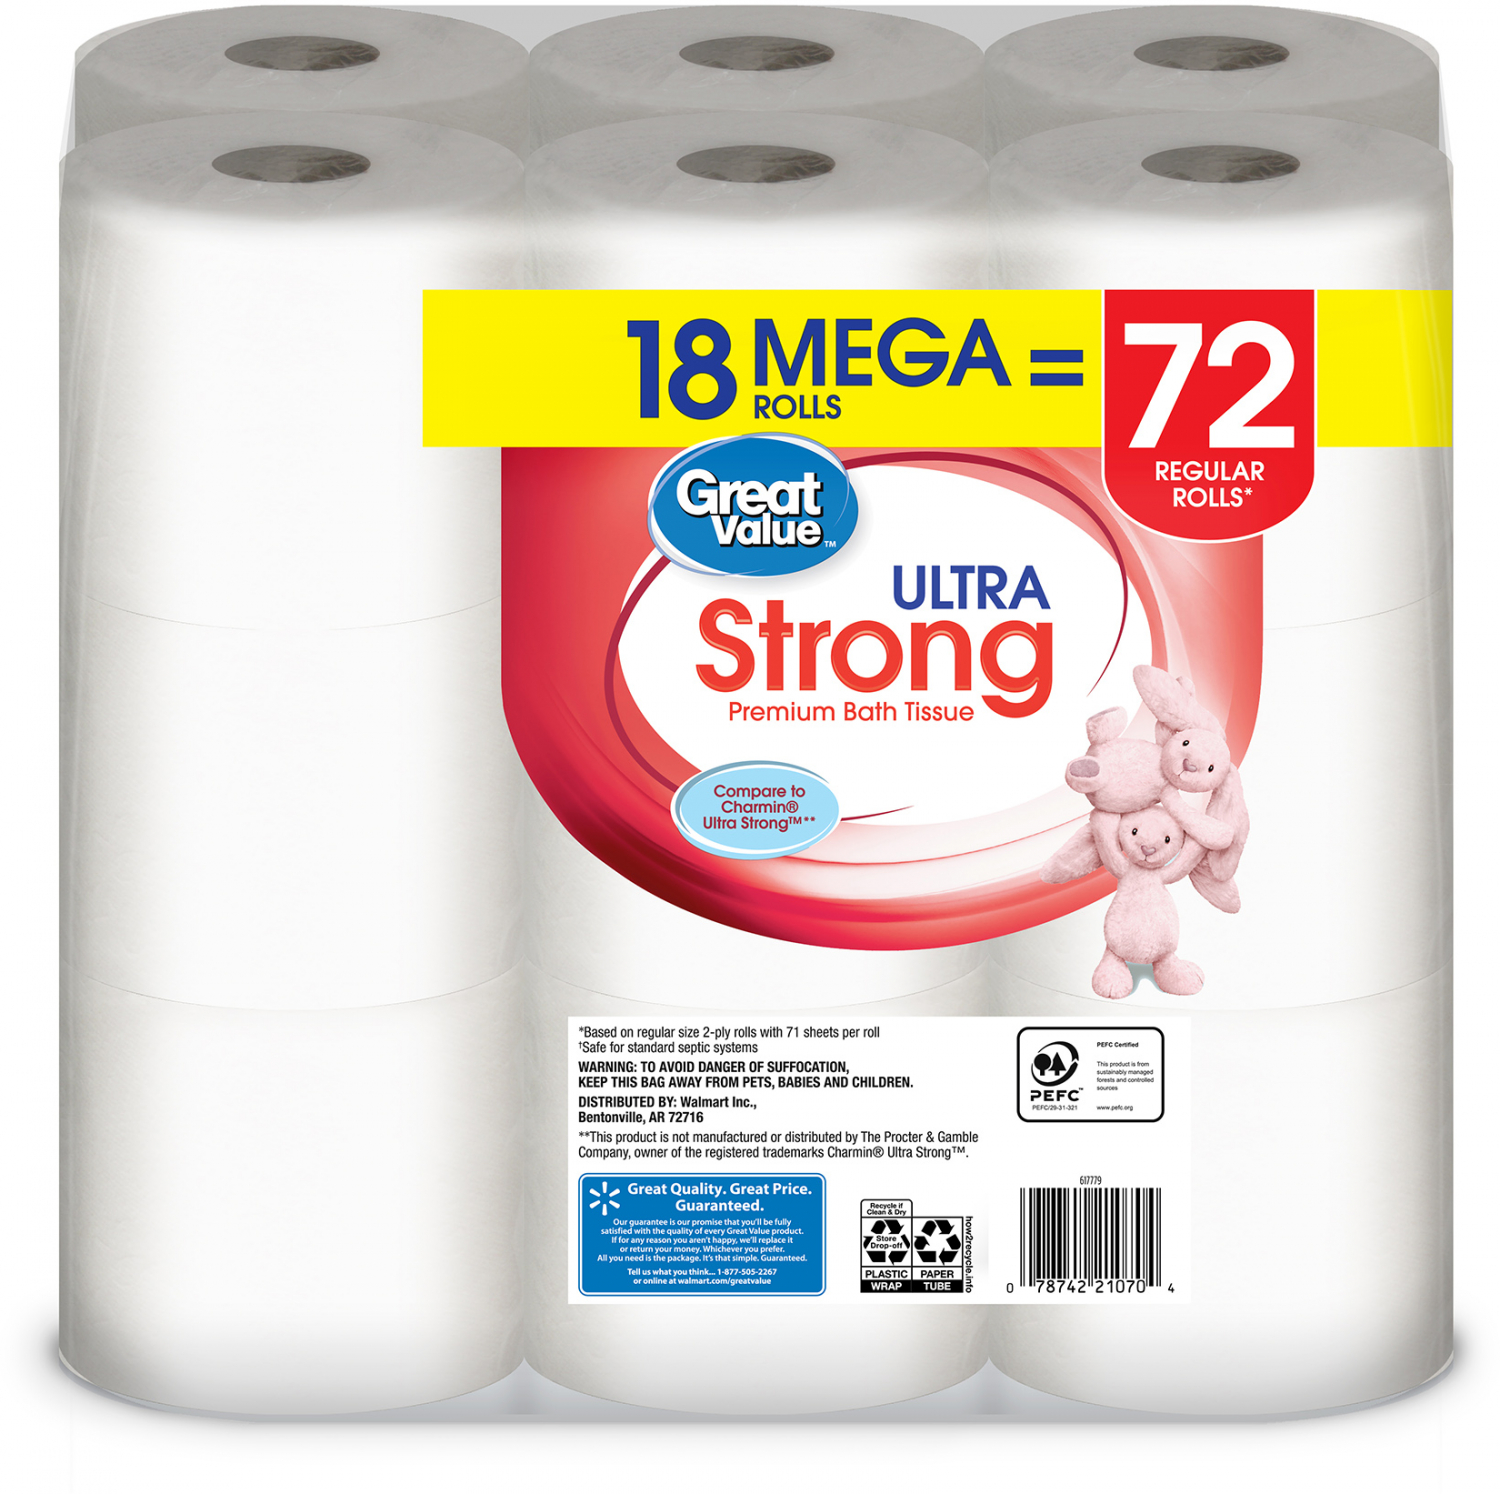 24-Mega-Rolls-Toilet-Paper-Ultra-Strong-2-Ply-Soft-Bath-Tissue-Save-Great-Value thumbnail 17